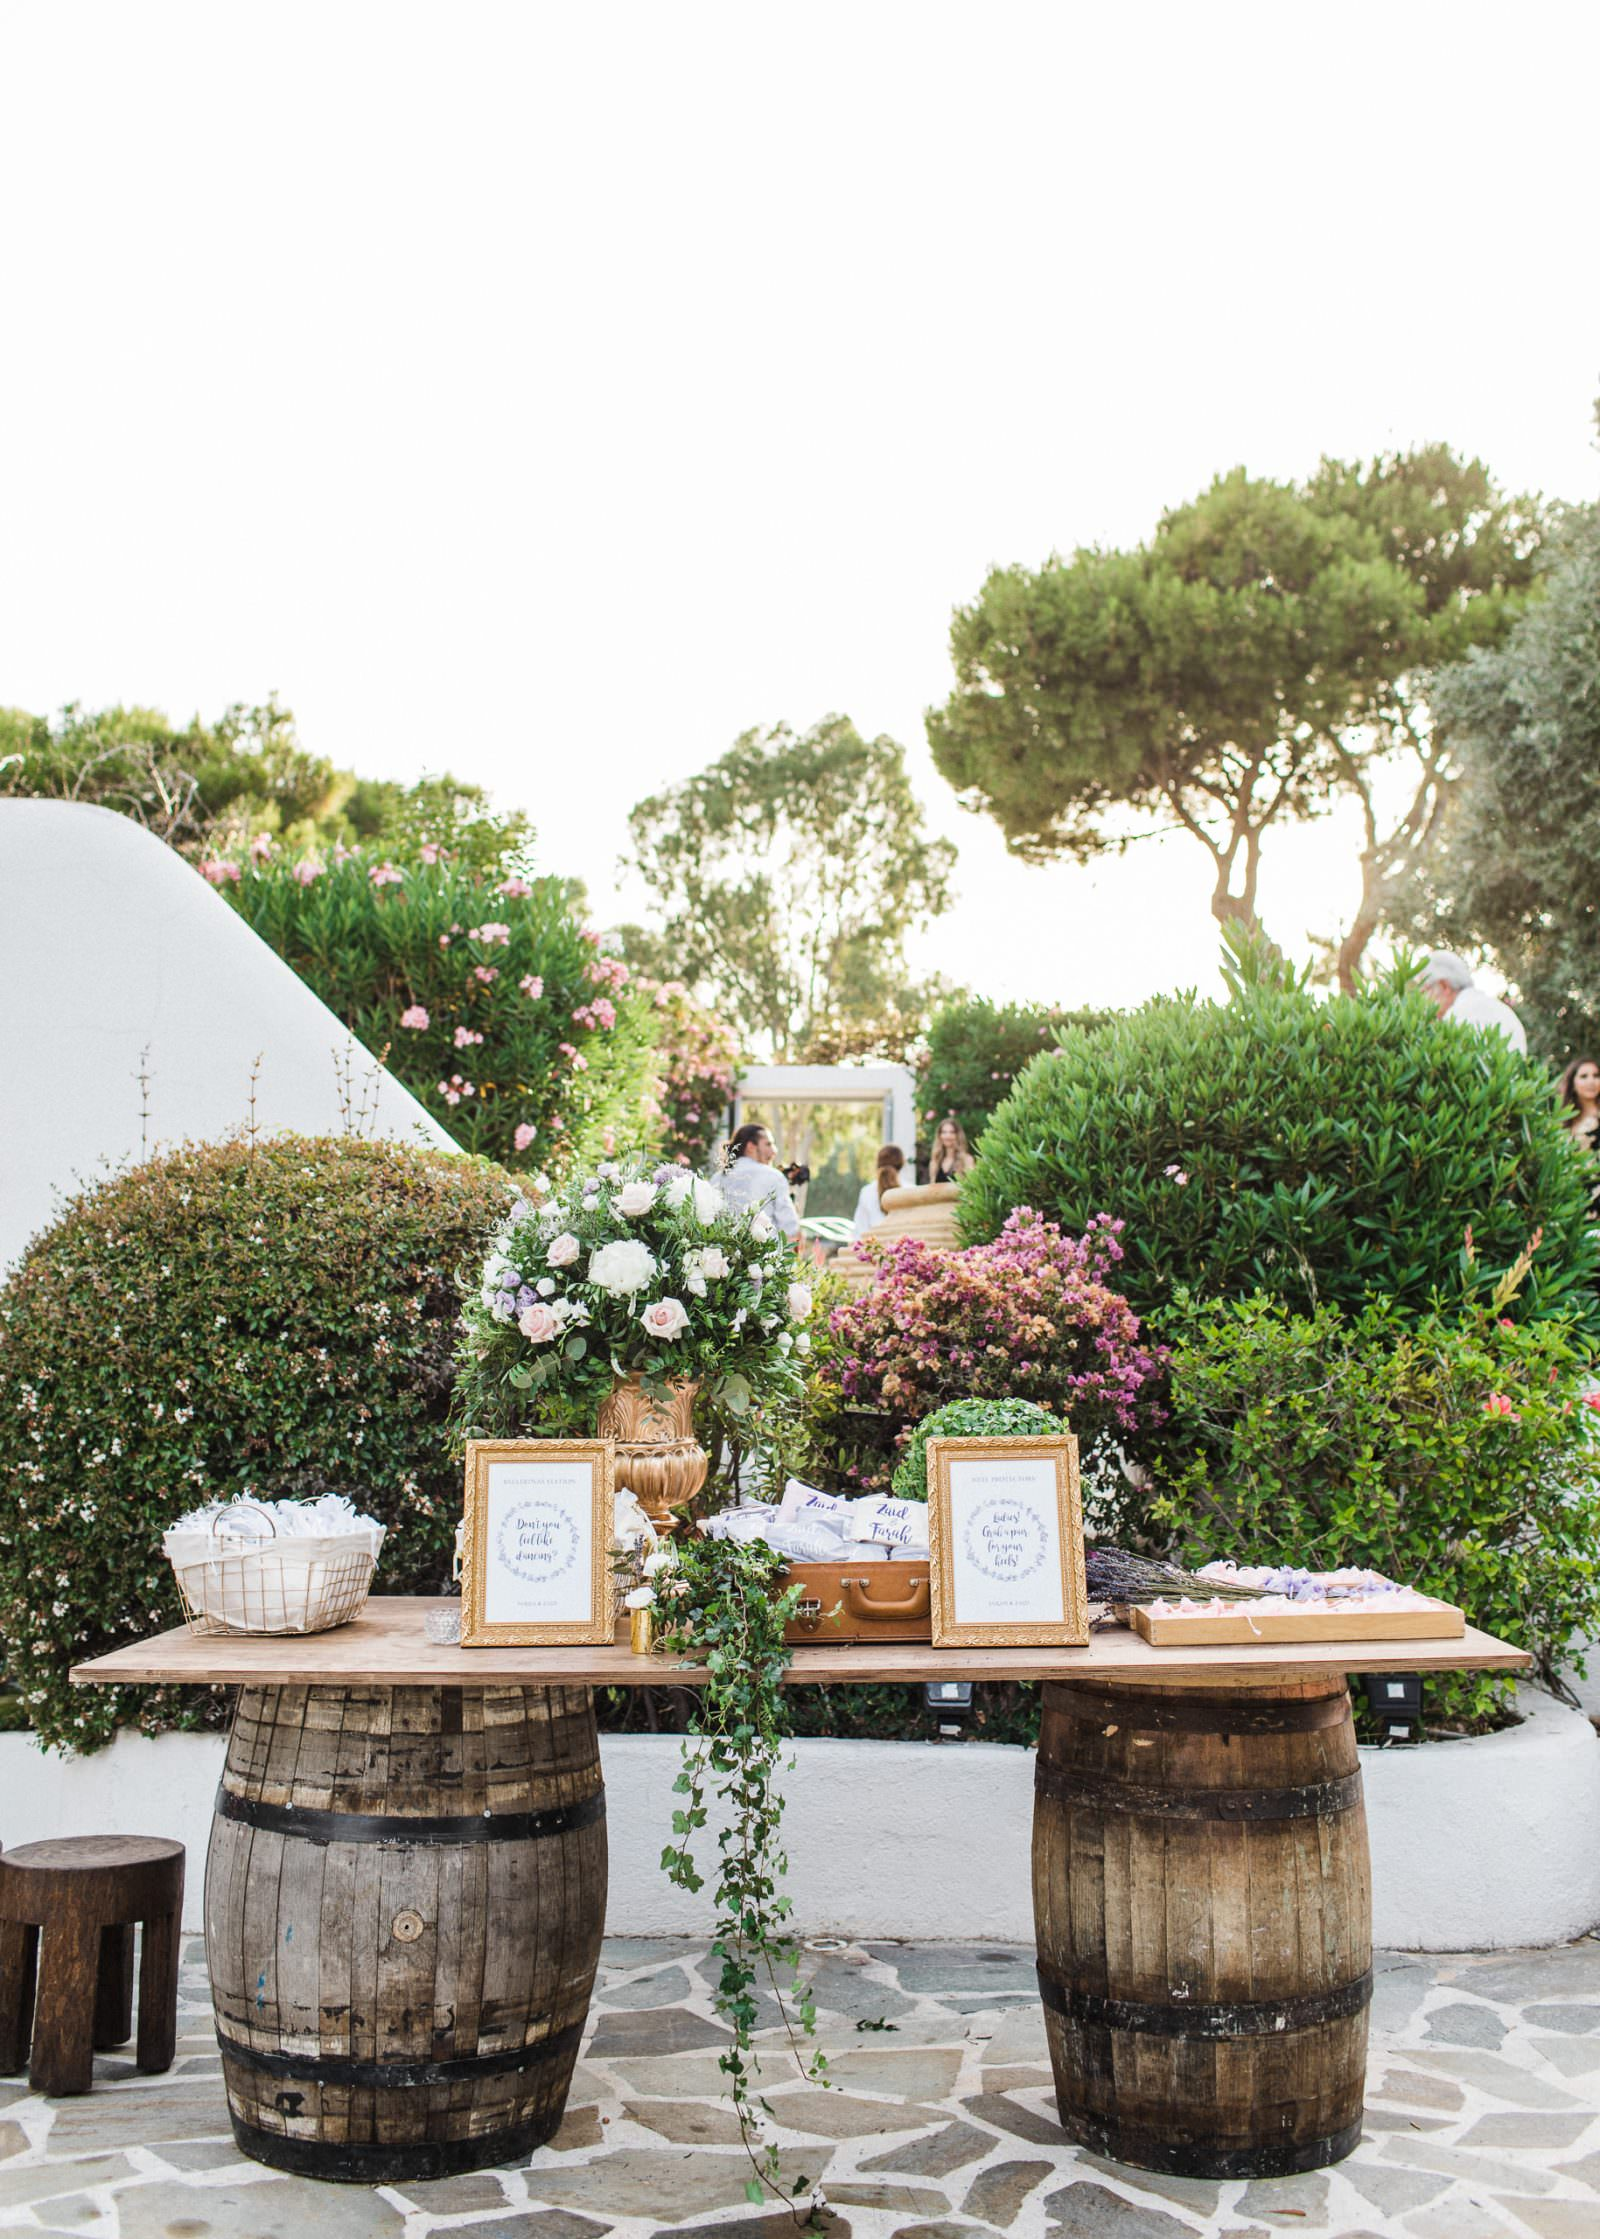 Island resort Athens Rivera rustic wedding decoration